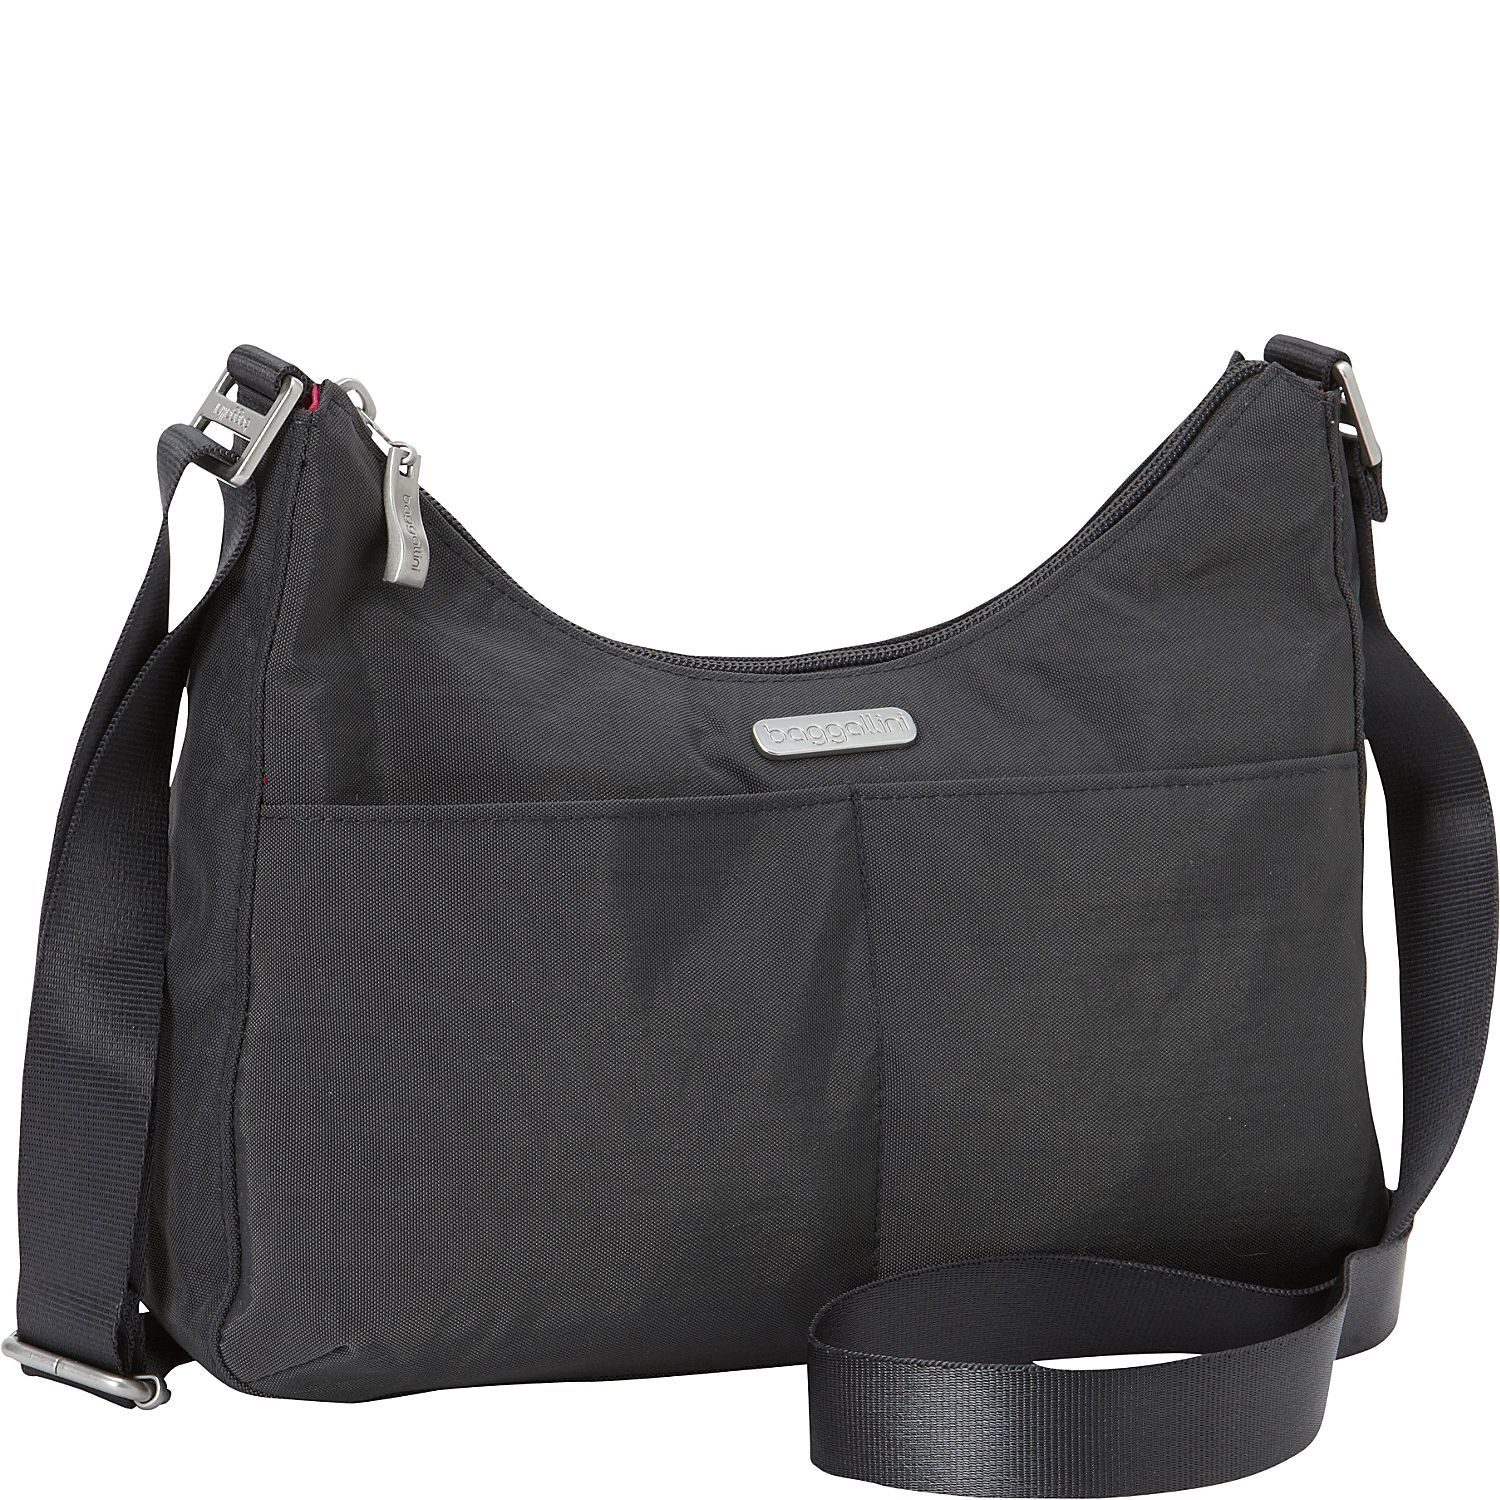 14161273cb60 Buy the baggallini Harmony Medium Hobo- Exclusive at eBags - Designed to  carry all of your essentials